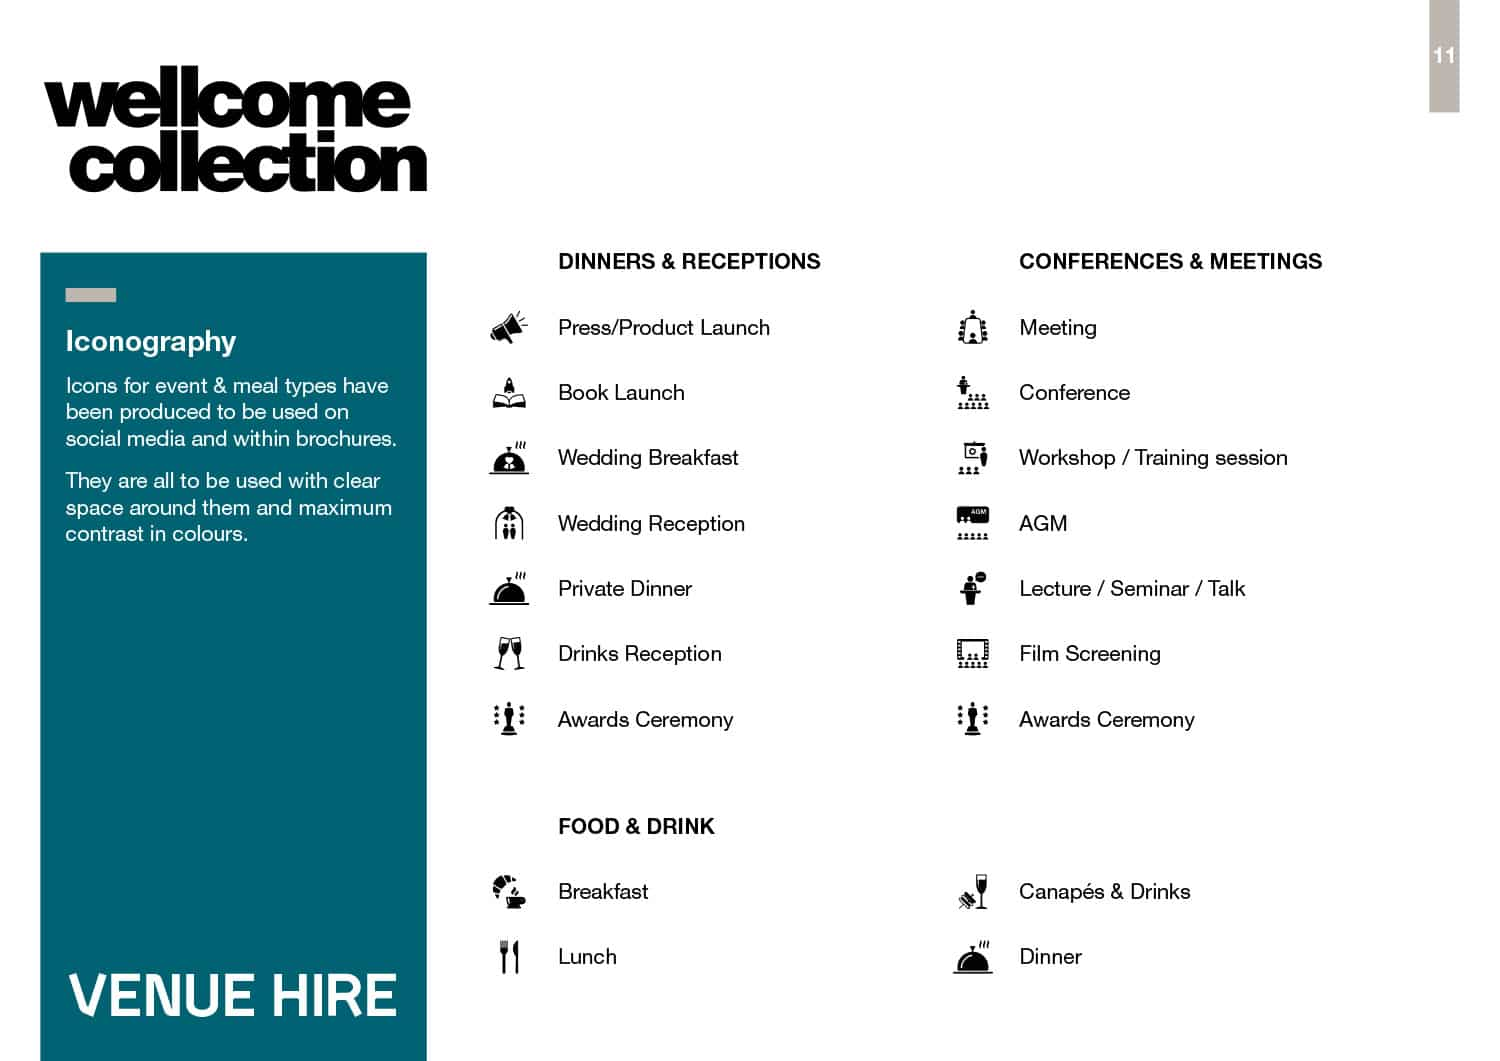 Wellcome Collection Venue Hire brand guidelines and templates